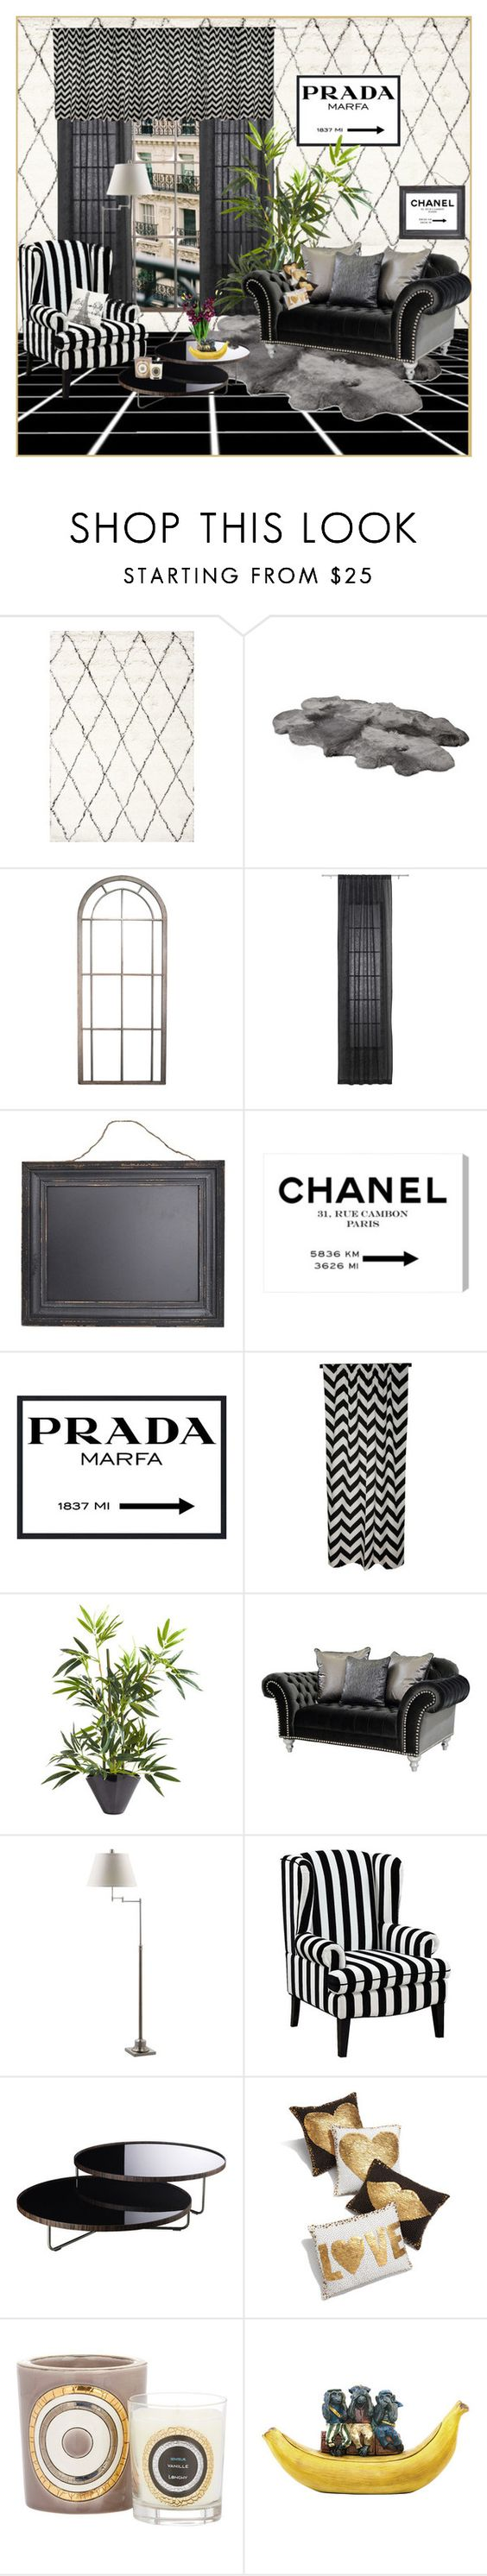 """""""Senza titolo #1671"""" by aanyaa ❤ liked on Polyvore featuring interior, interiors, interior design, home, home decor, interior decorating, nuLOOM, CB2, Prada and Elisabeth Michael"""